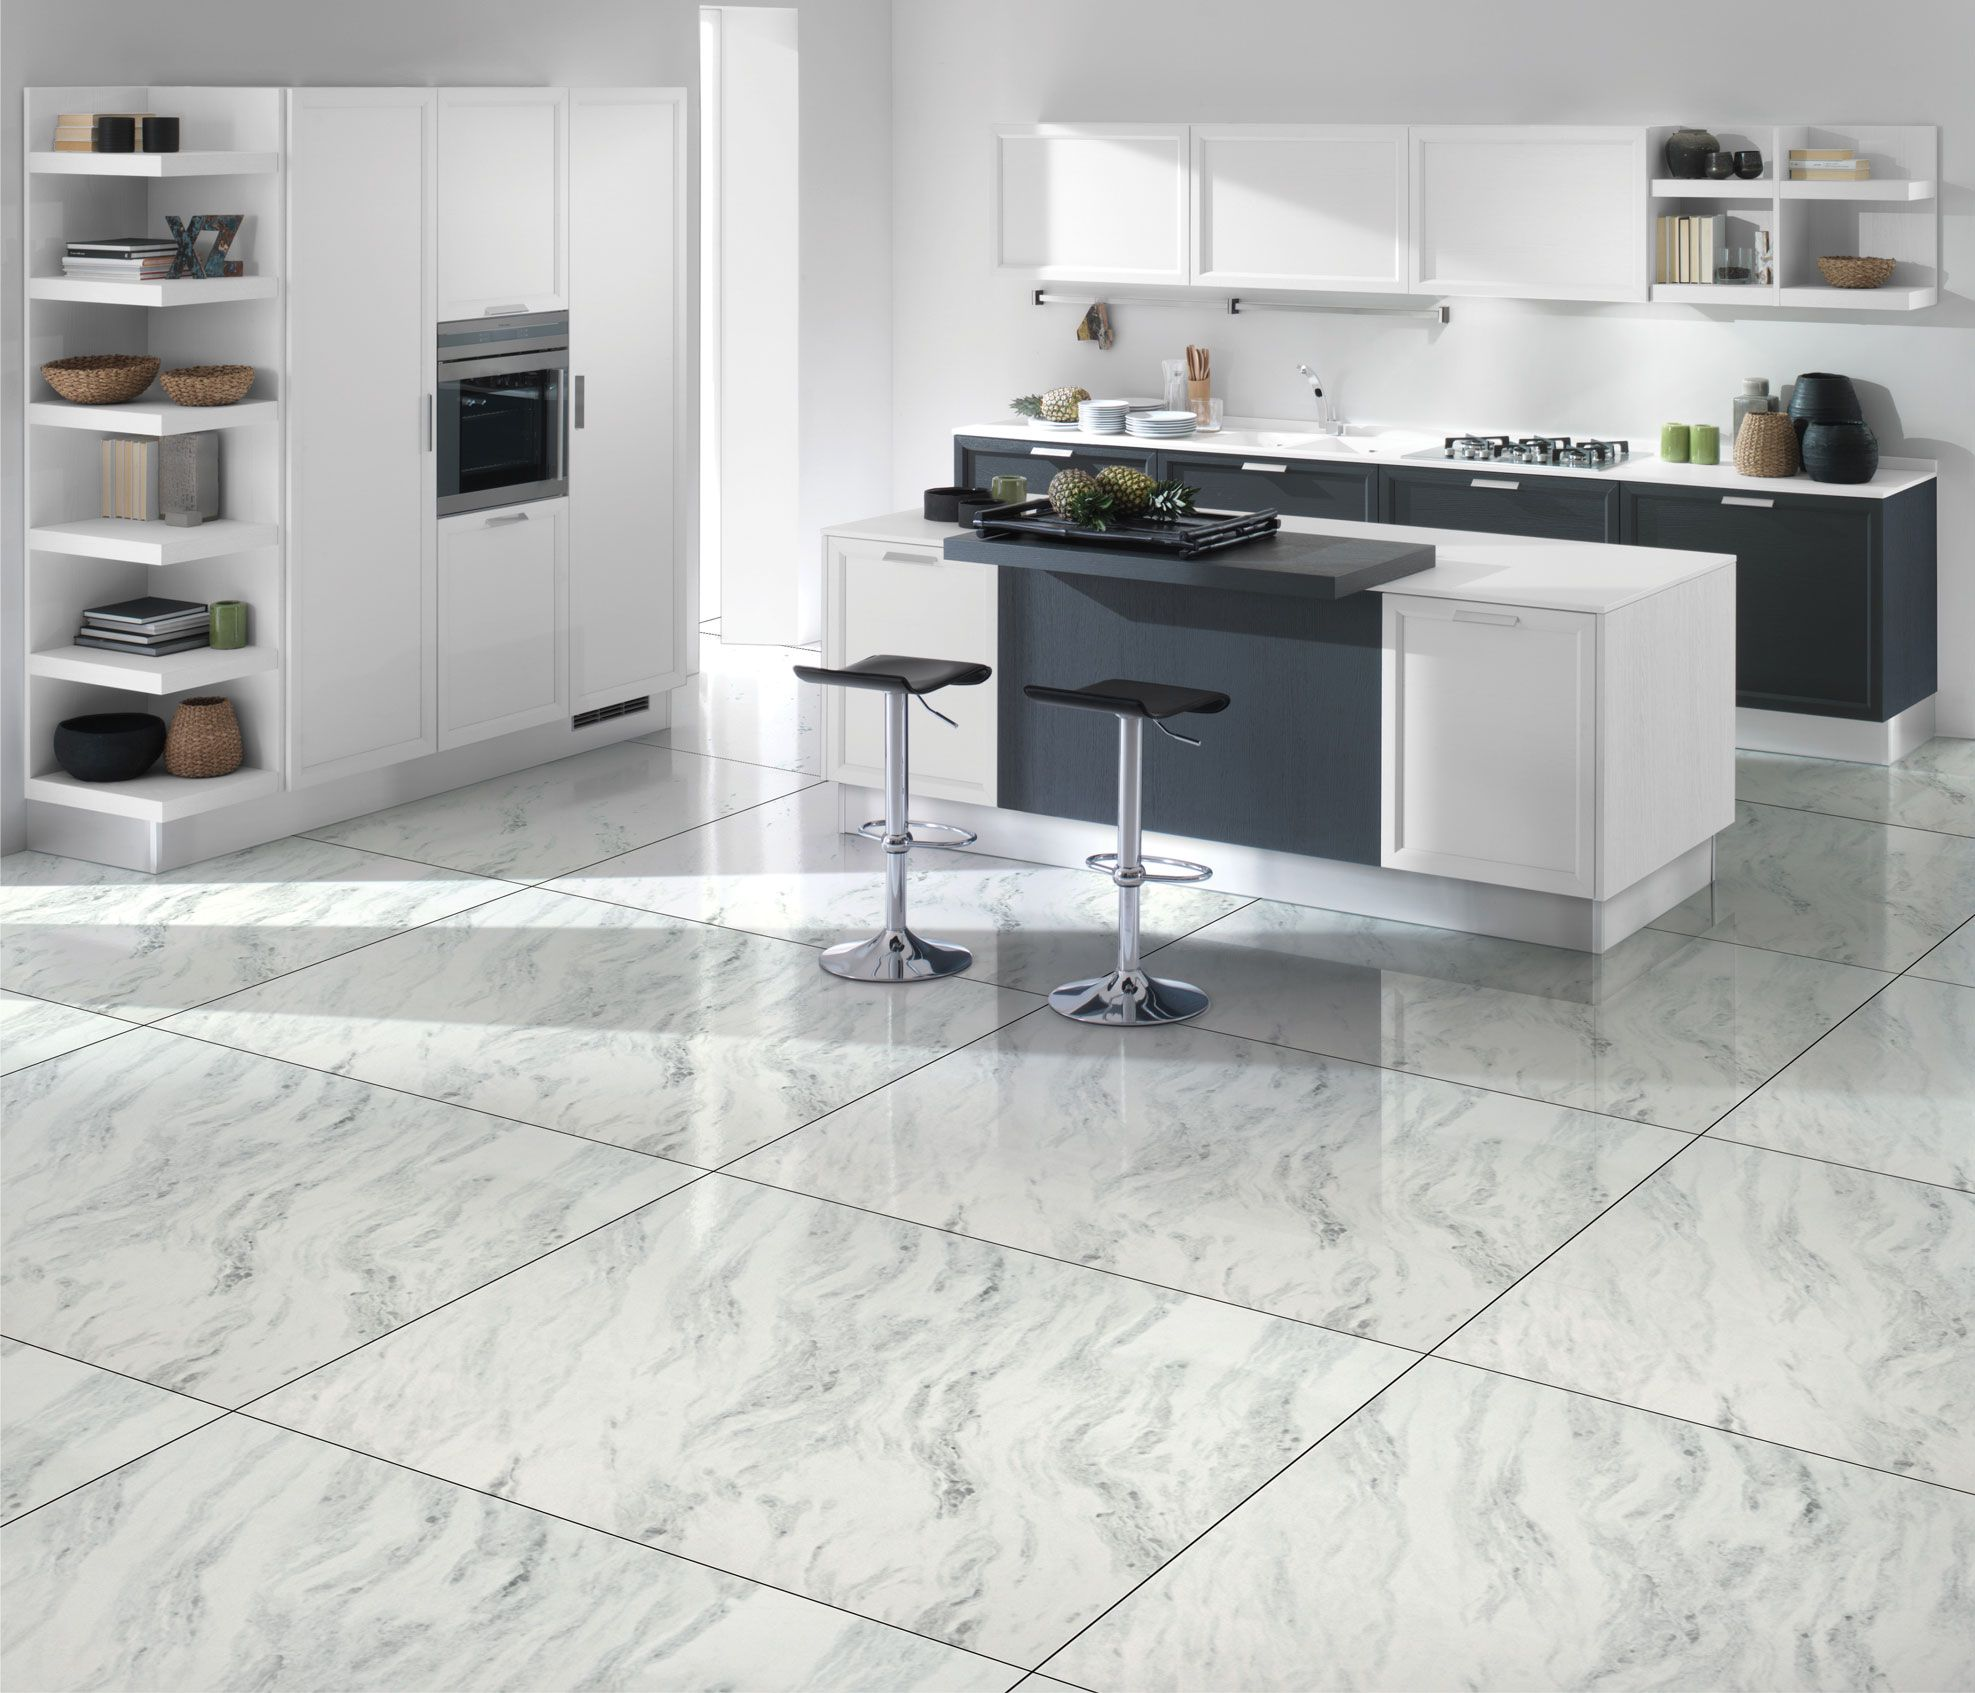 Home Office Vinyl Flooring Tiles In Dubai: Buy Designer Floor, Wall #Tiles For Bathroom, Bedroom